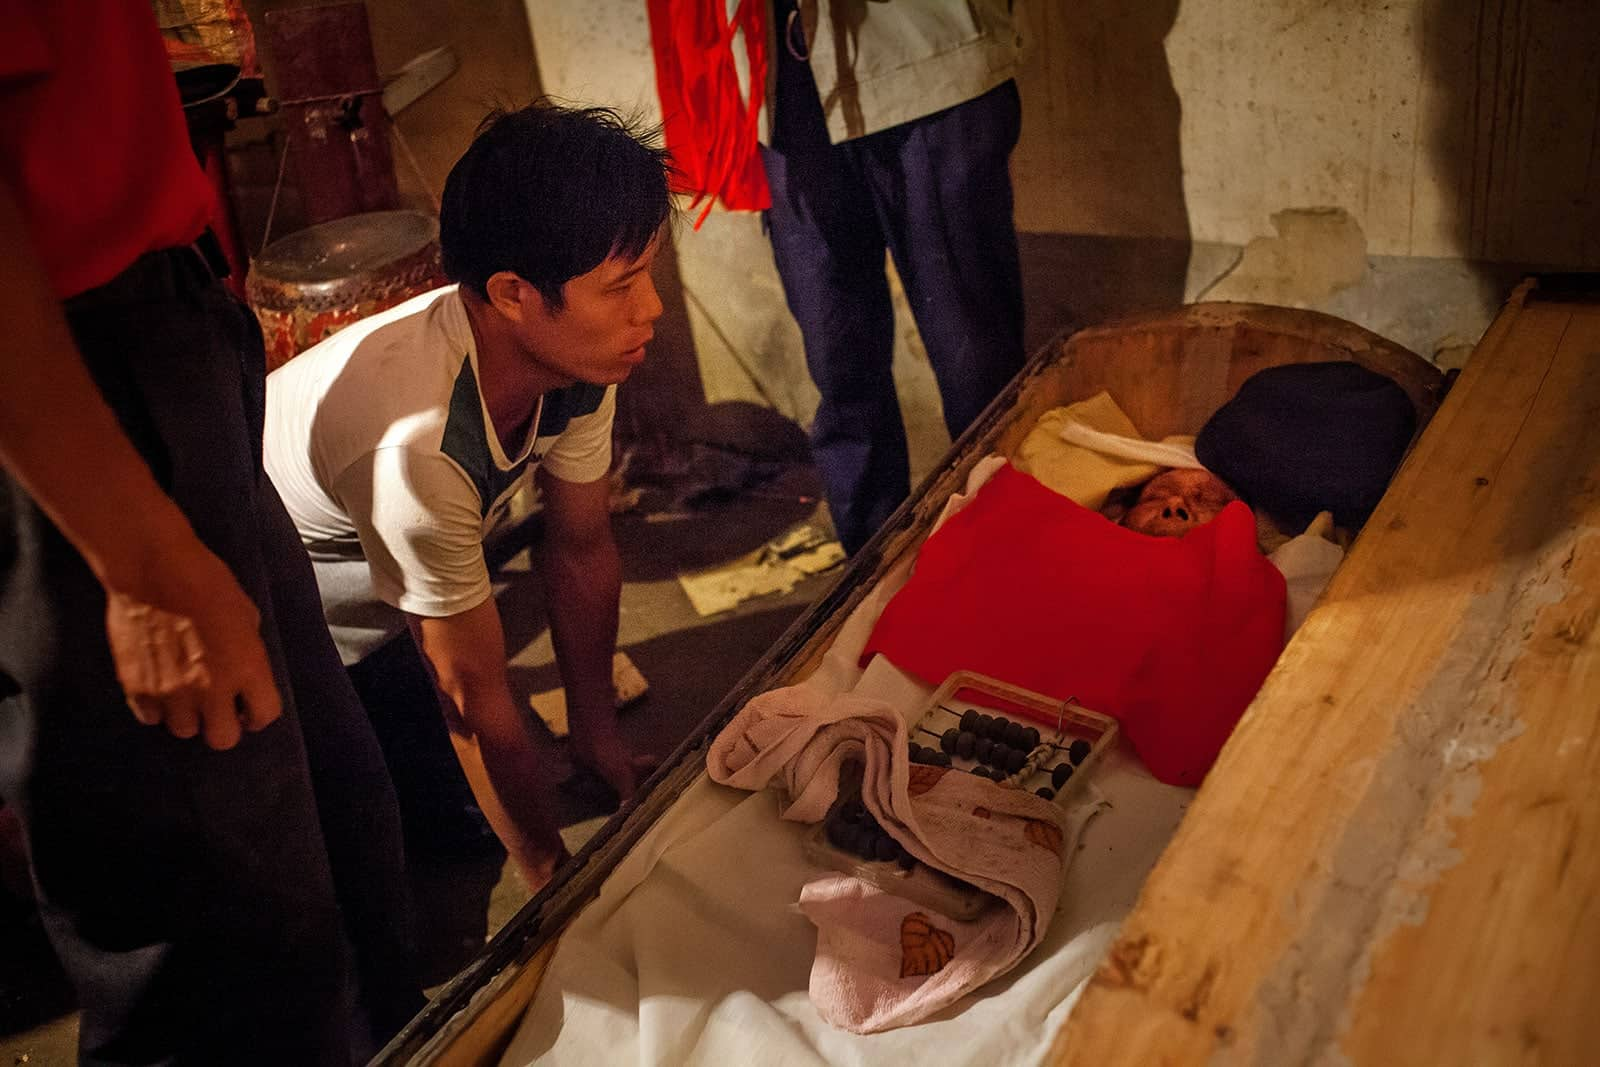 The Huang's second eldest son, Huang Shou-Bin, kneels at his father's coffin to say goodbye one last time.